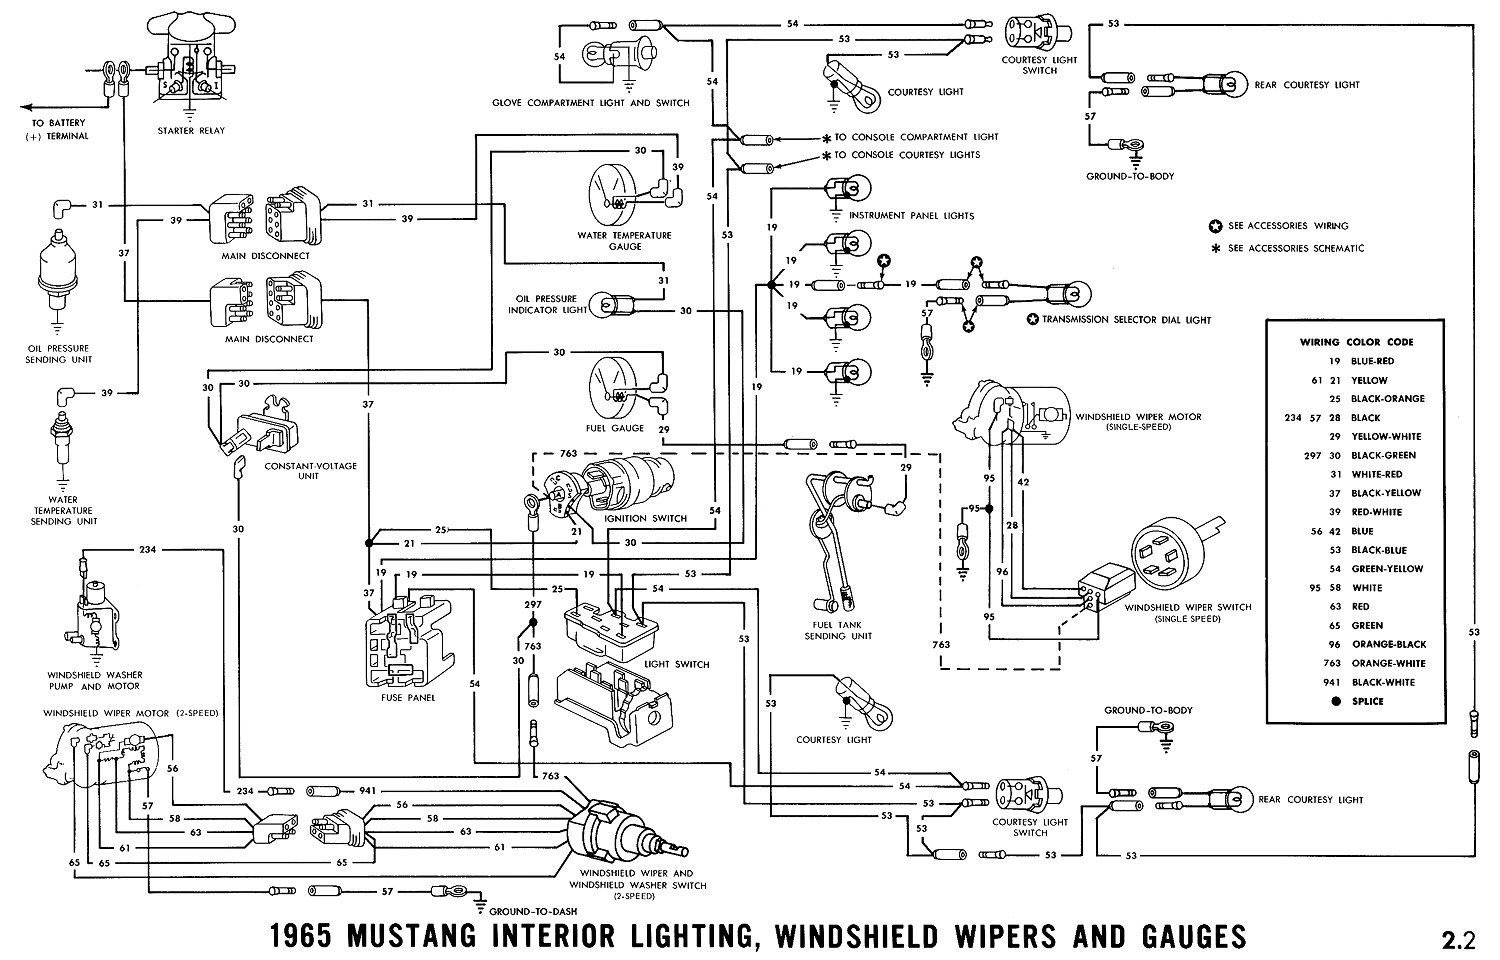 1965g 1965 mustang wiring diagrams average joe restoration 1965 ford mustang wiring diagrams at crackthecode.co